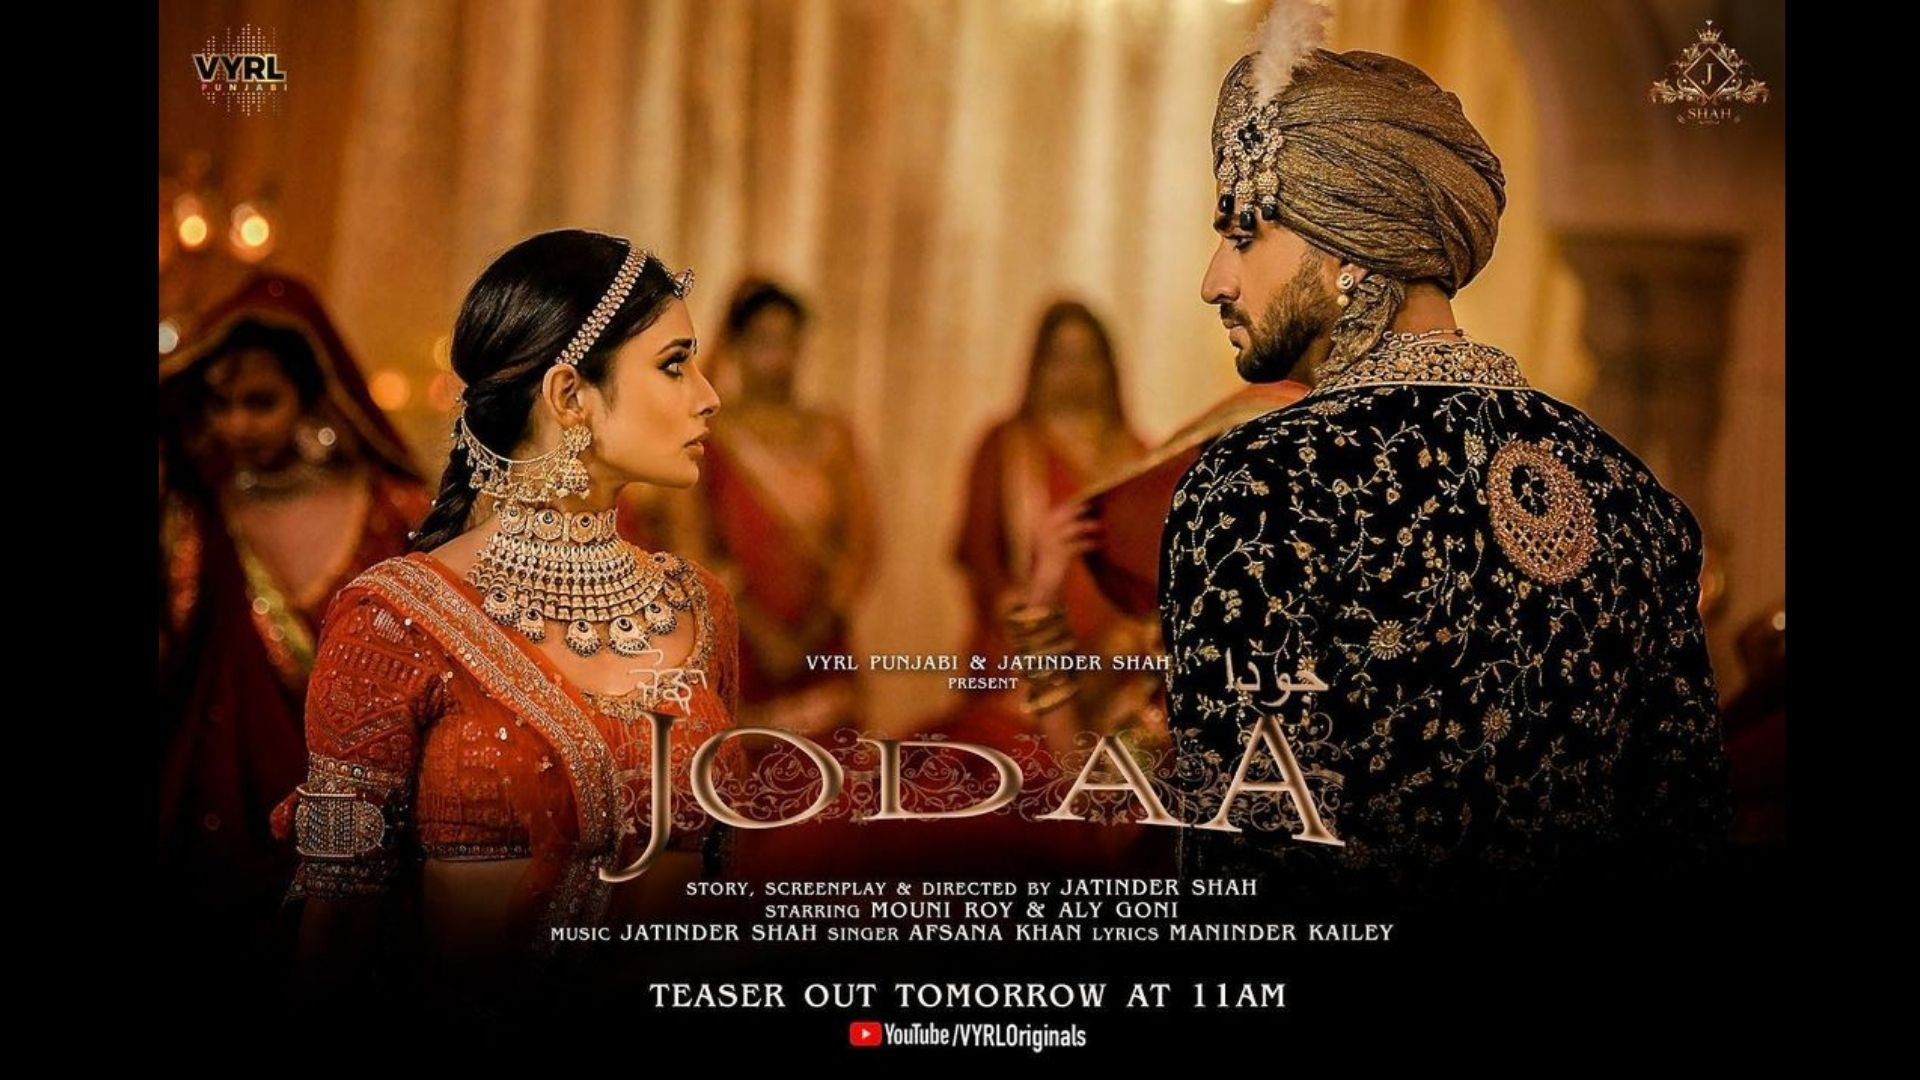 Jodaa Song Out Now: Mouni Roy and Aly Goni's New Track Video Is All Ooz, Elegance And Royal